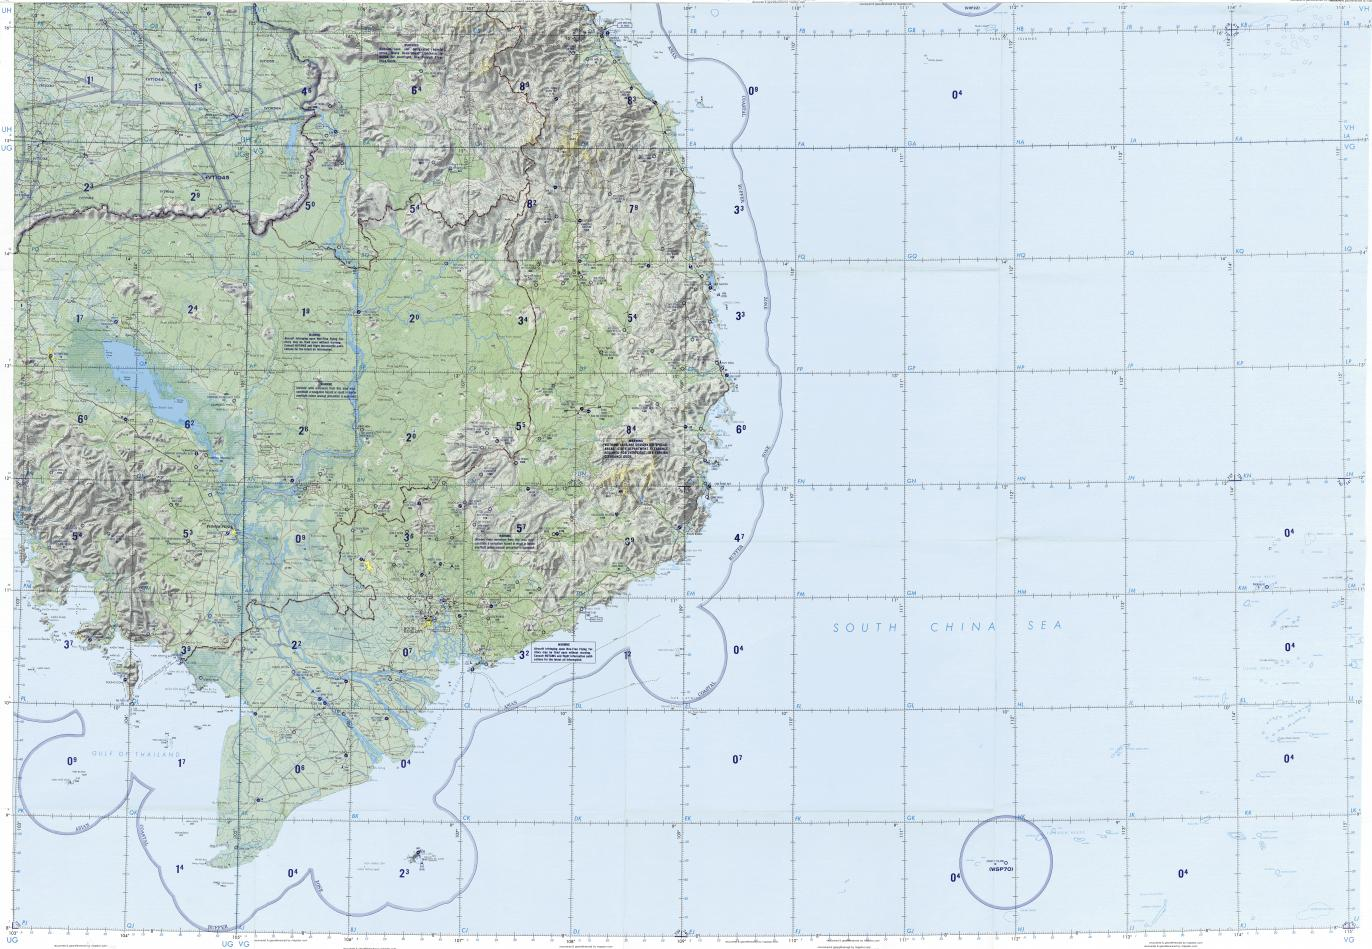 Download topographic map in area of Ho Chi Minh City Bien Hoa Nha